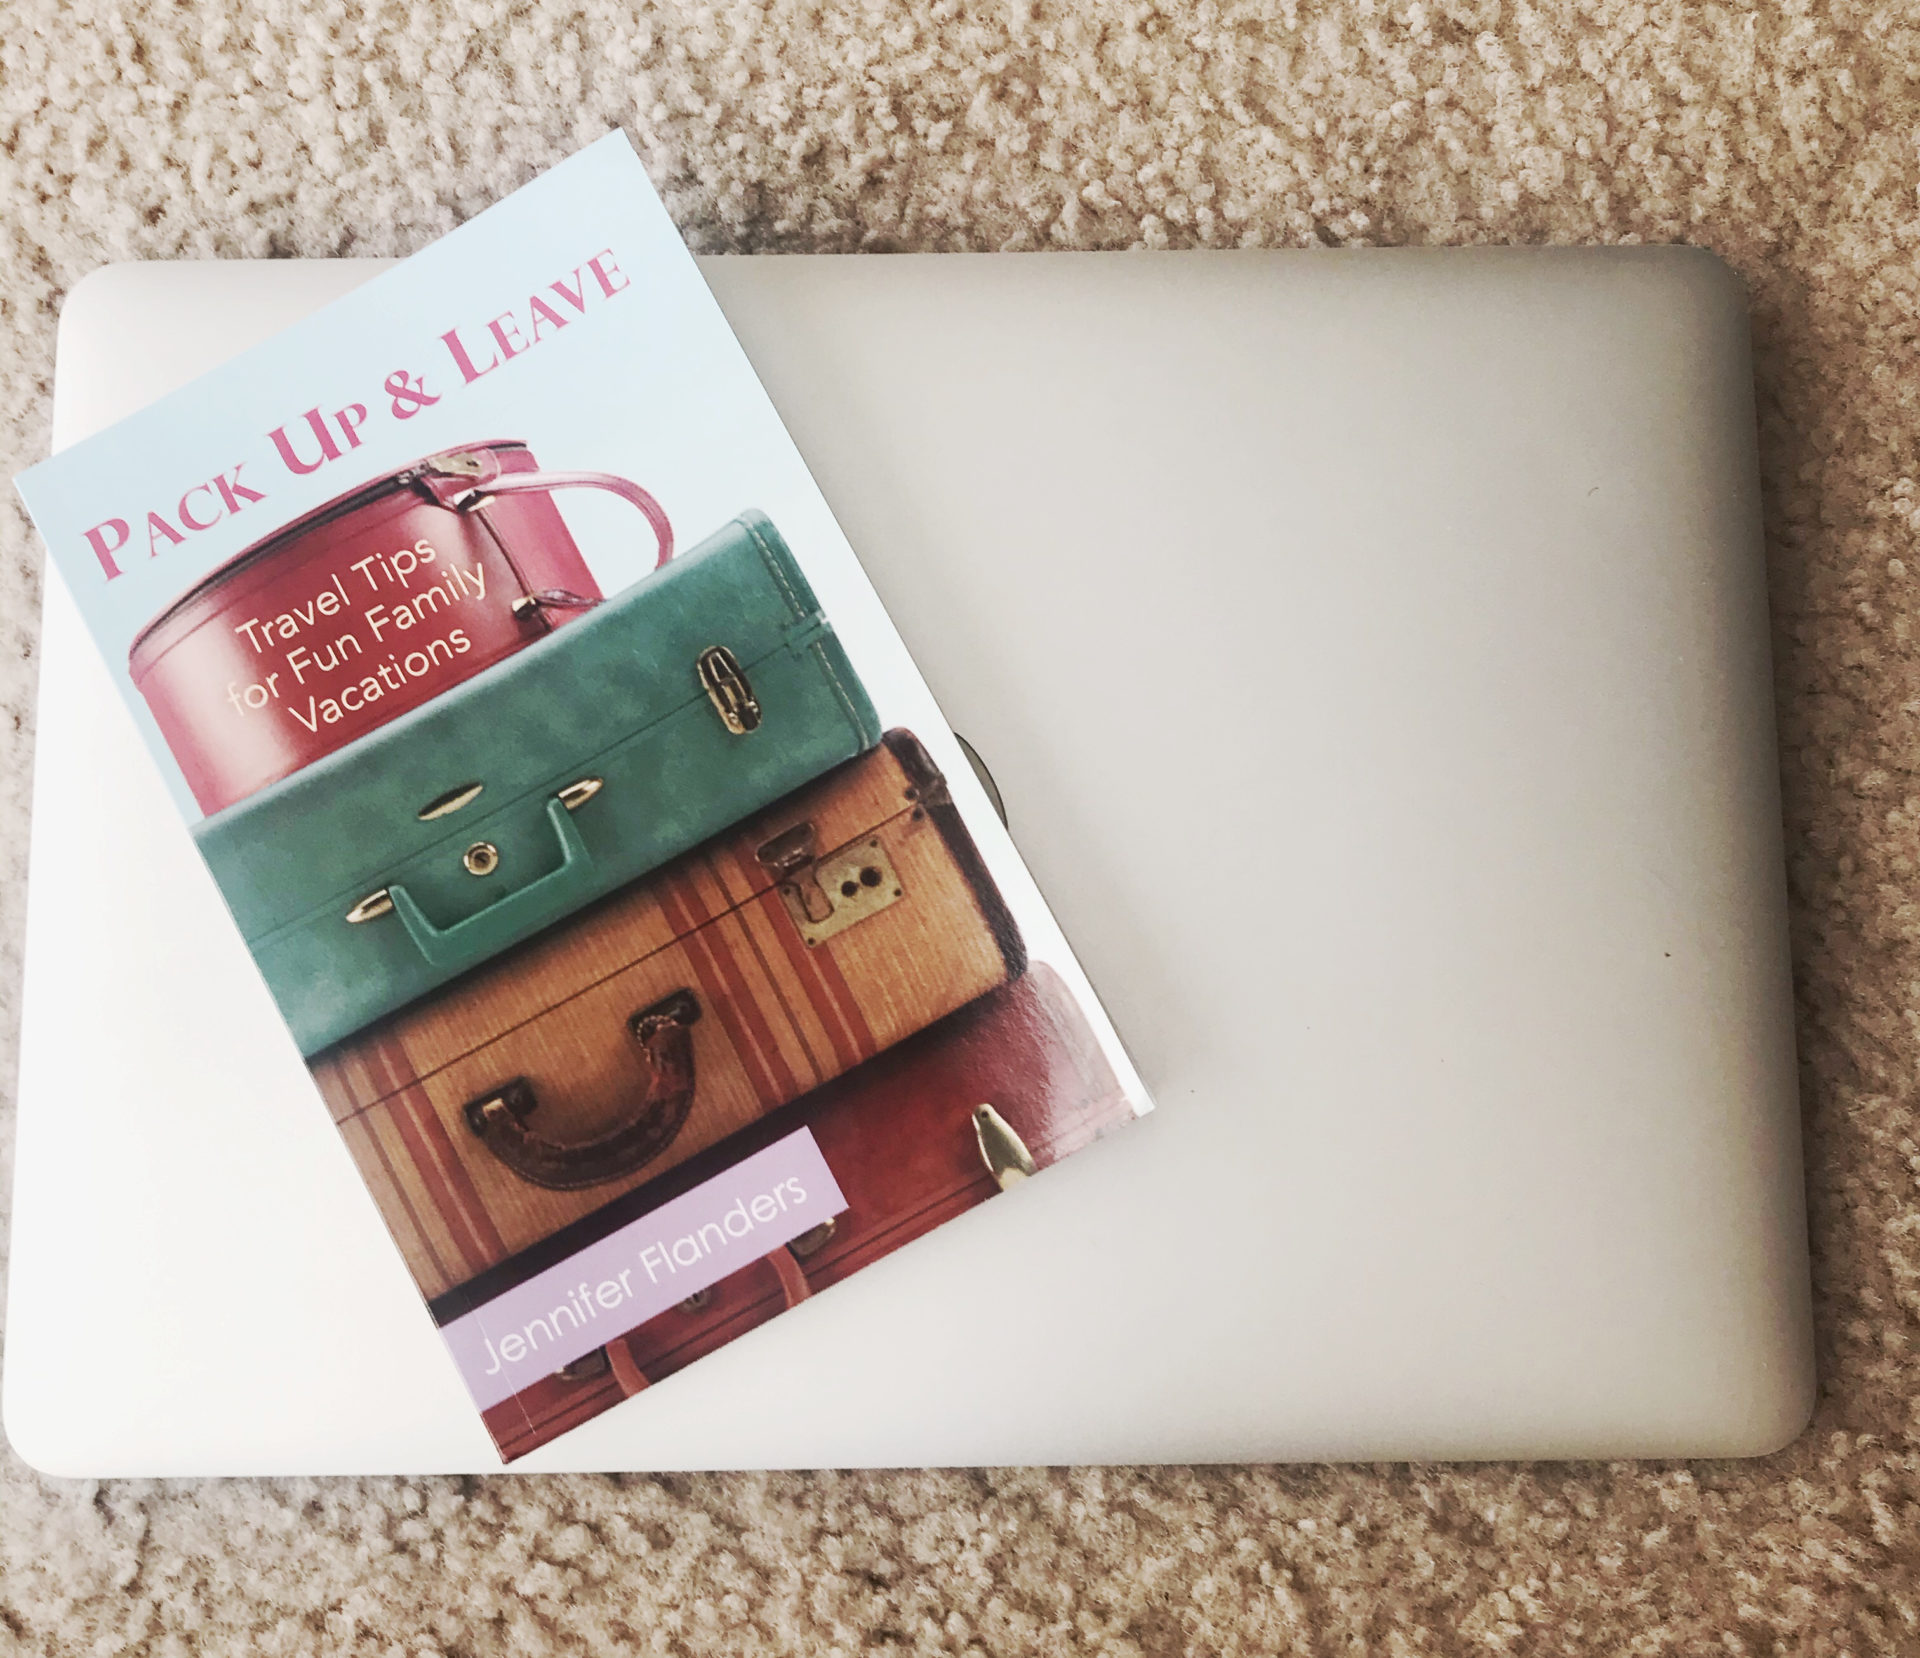 BOOK REVIEW: PACK UP & LEAVE BY JENNIFER FLANDERS